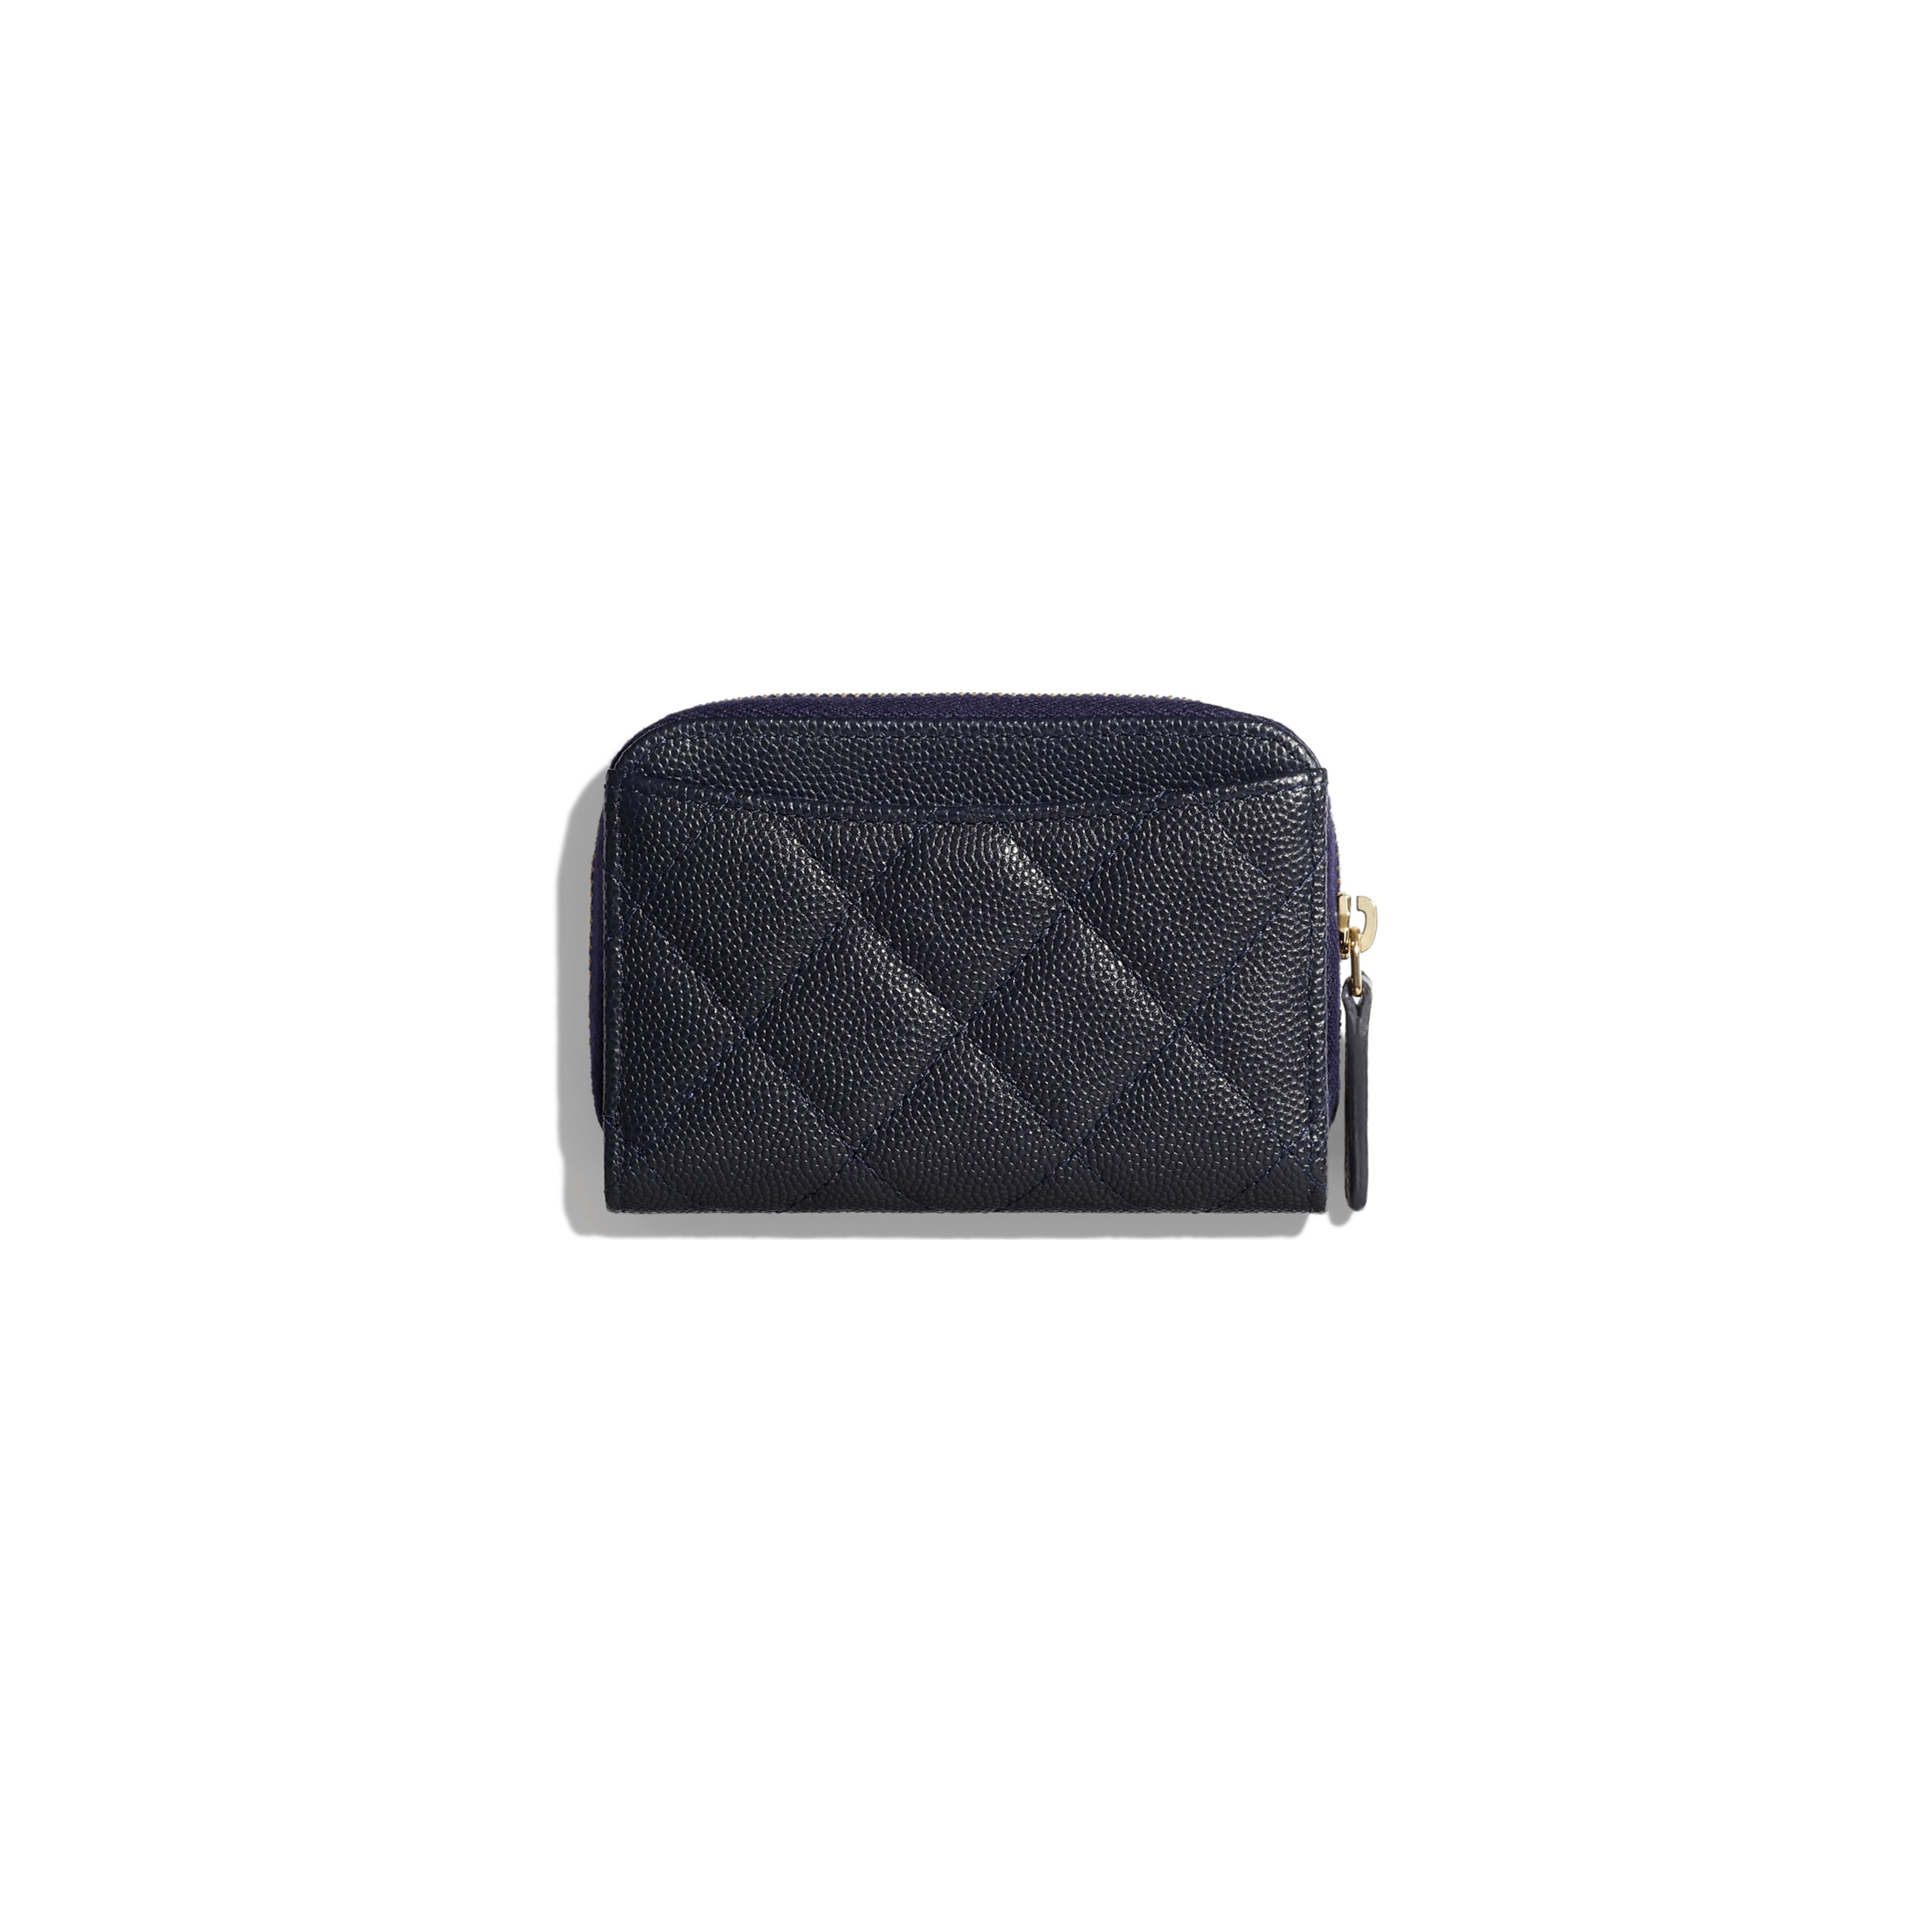 Classic Zipped Coin Purse - Navy Blue - Grained Calfskin & Gold-Tone Metal - Alternative view - see full sized version